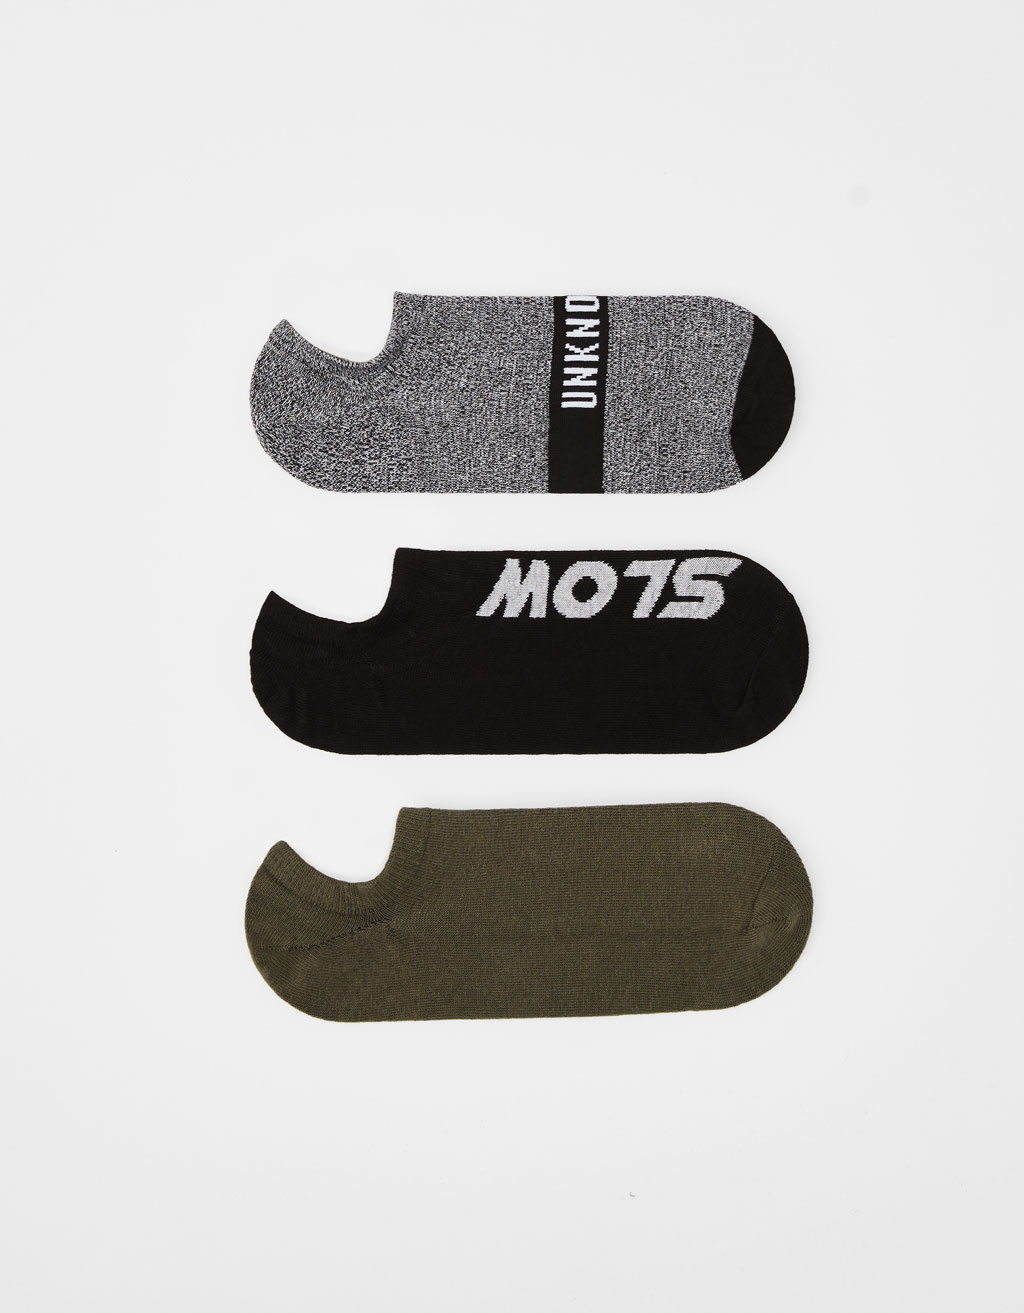 Set of slogan-printed socks